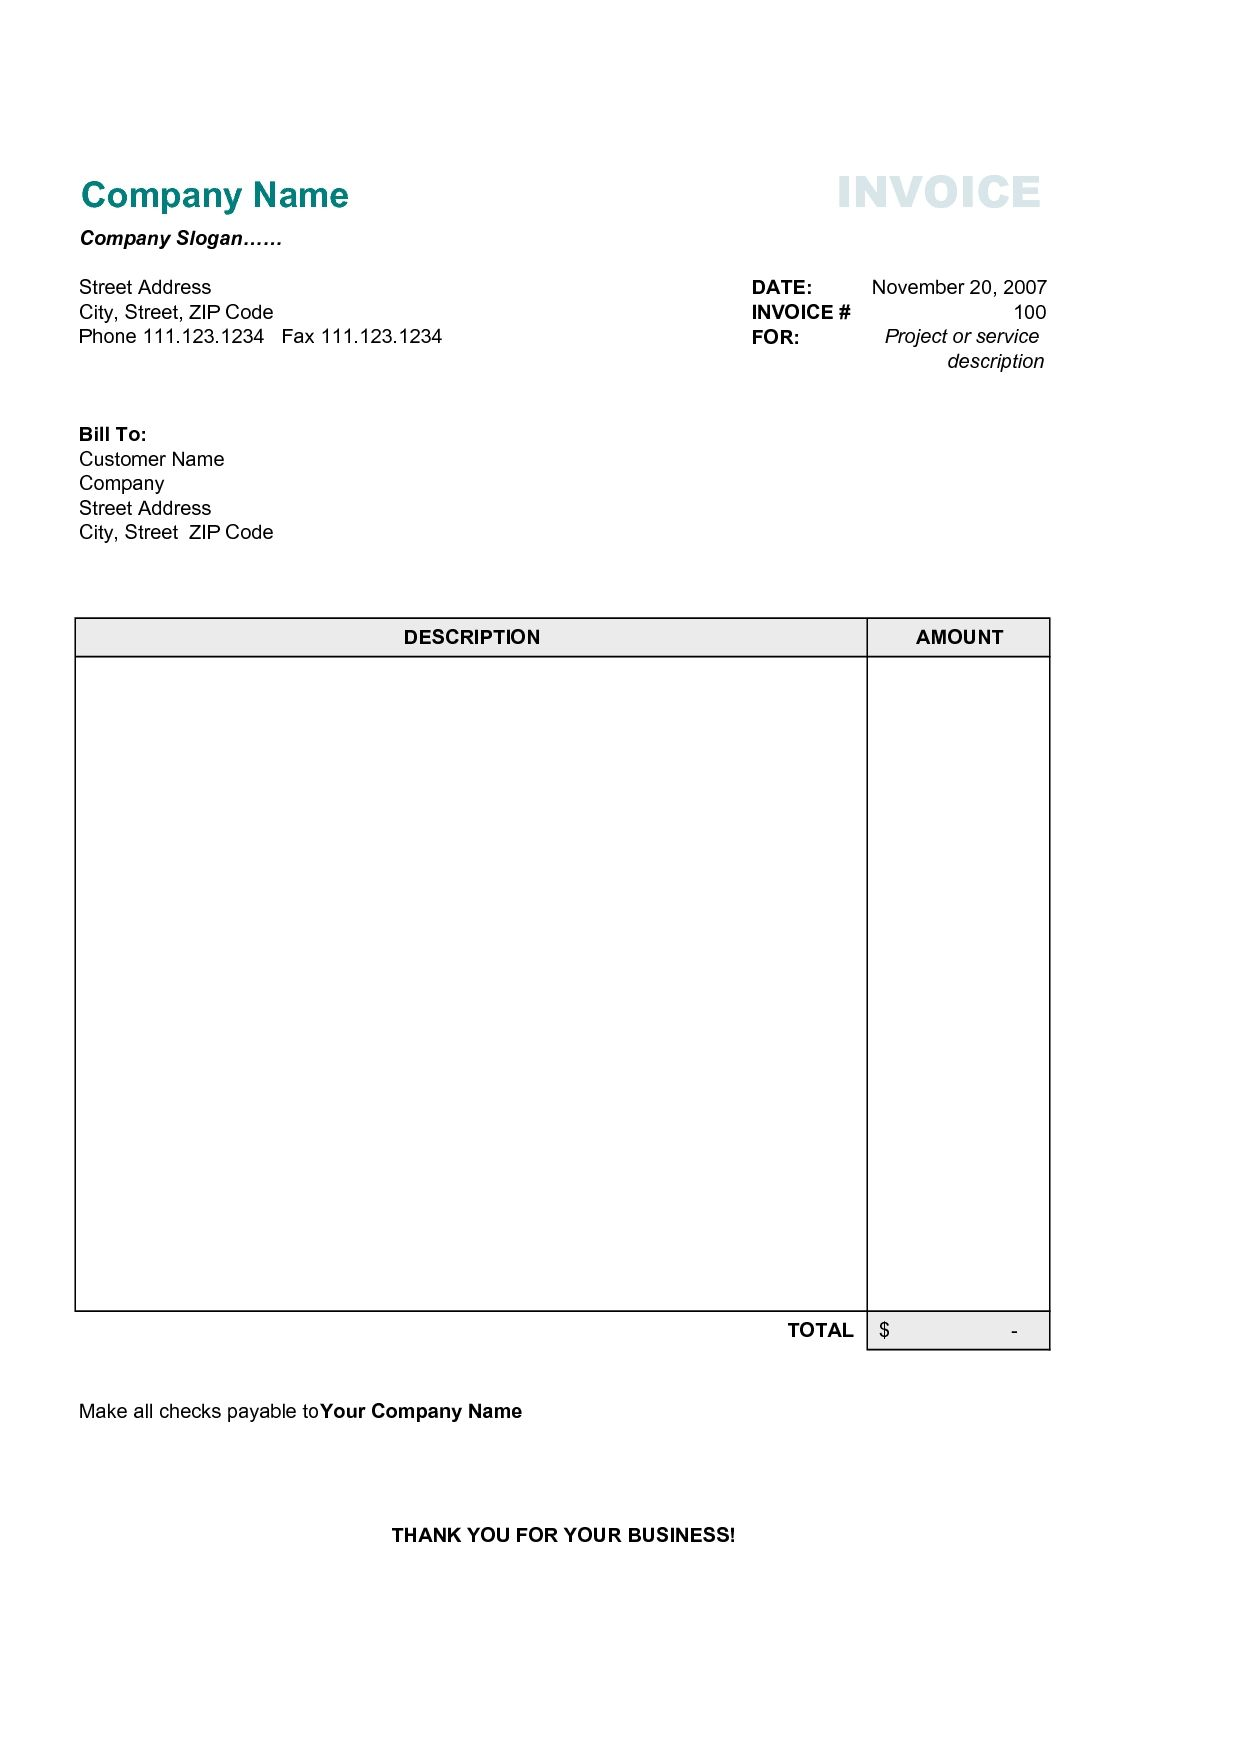 Free Business Invoice Template Best Business Template Free Invoice - Invoices templates free for service business